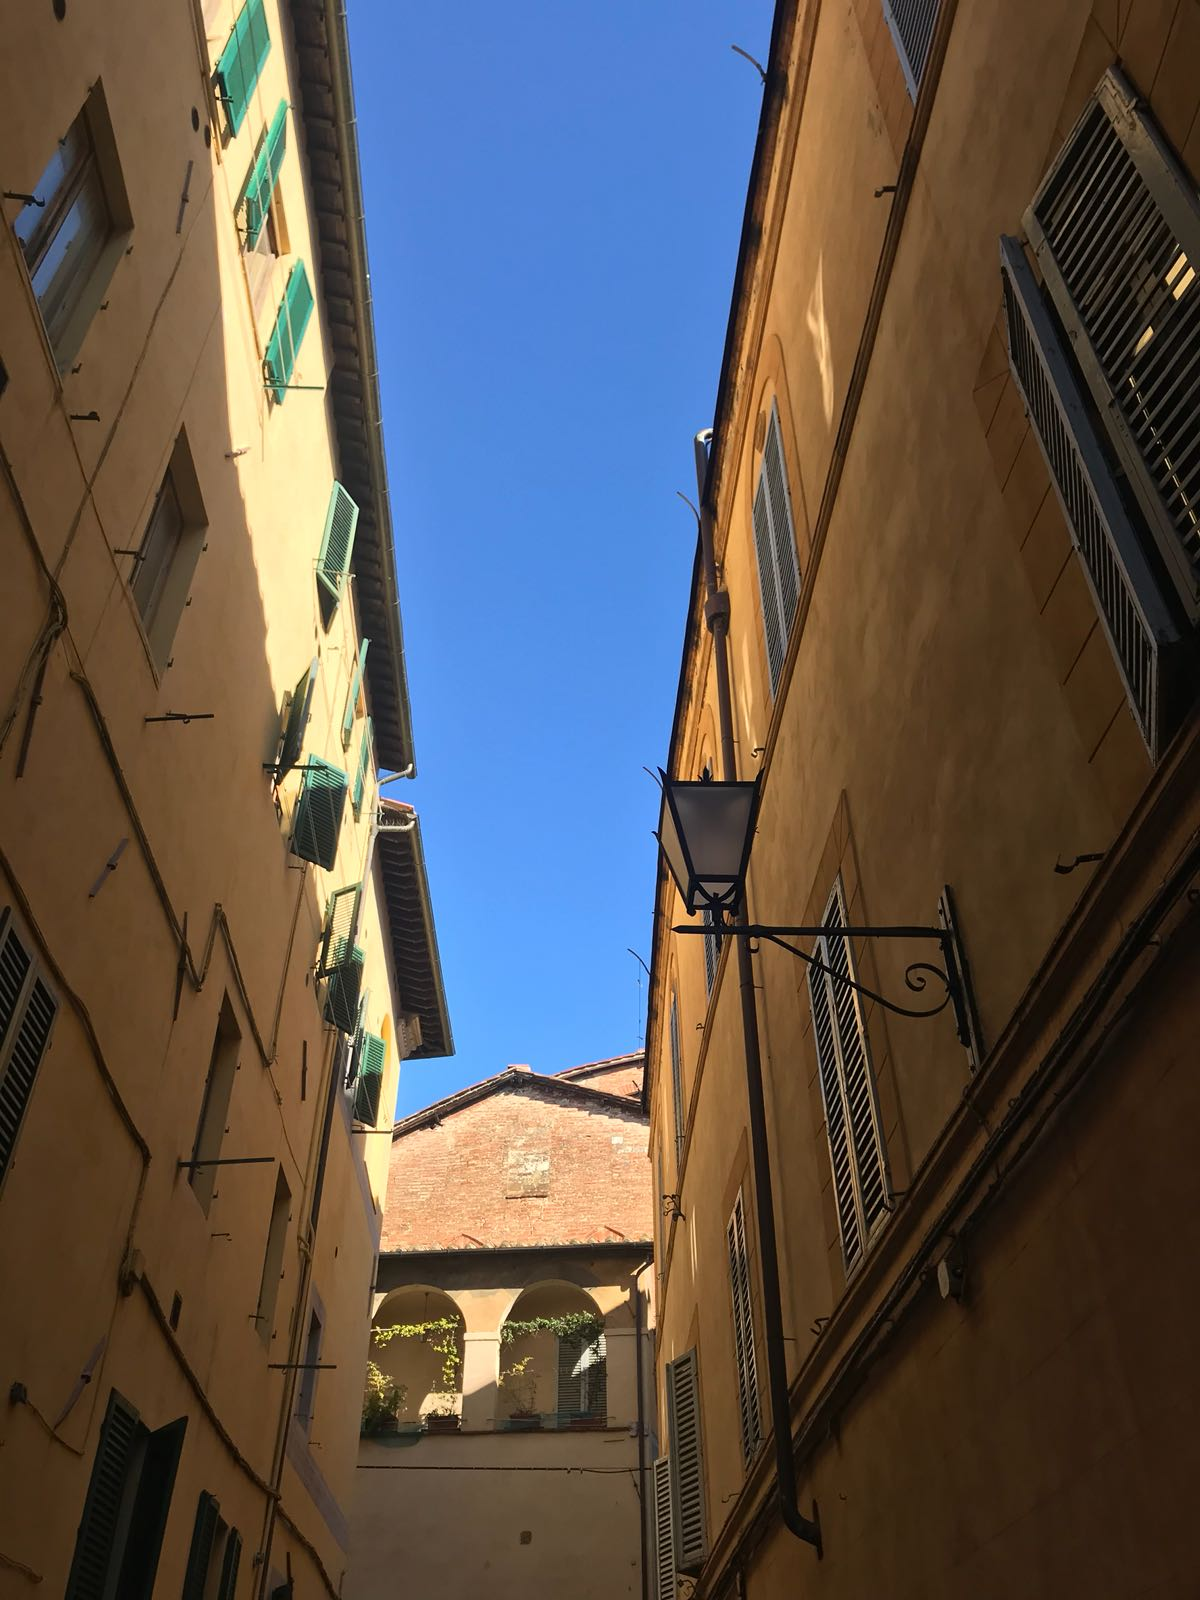 Blue sky, framed by a street in Siena also showing one of the local streetlights